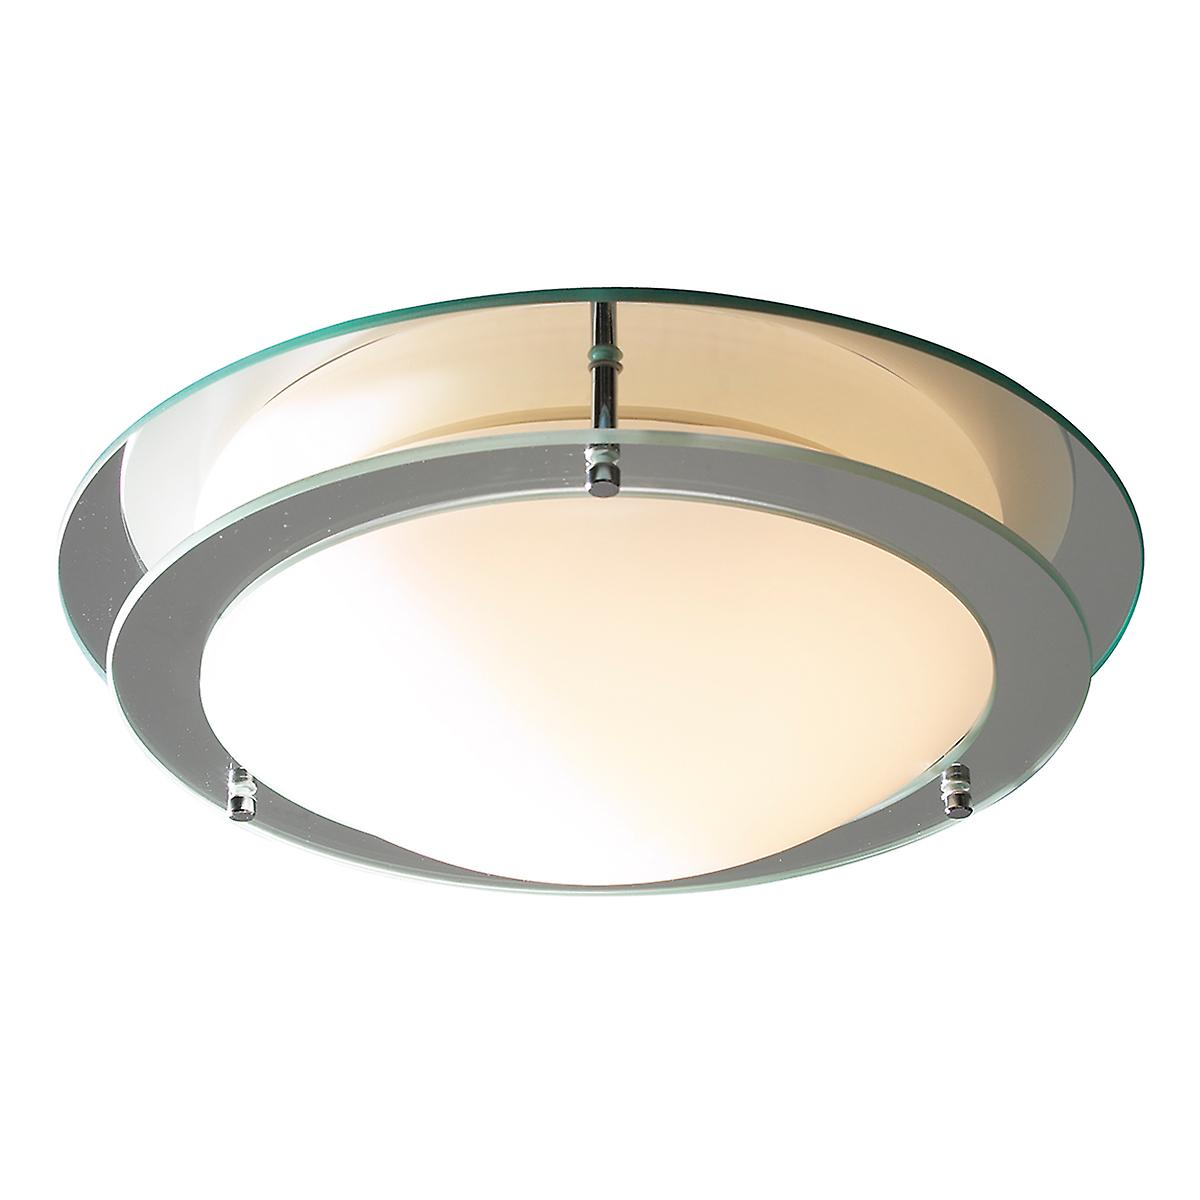 Dar LIB50 Libra Bathroom Flush Ceiling Light With Opal Glass